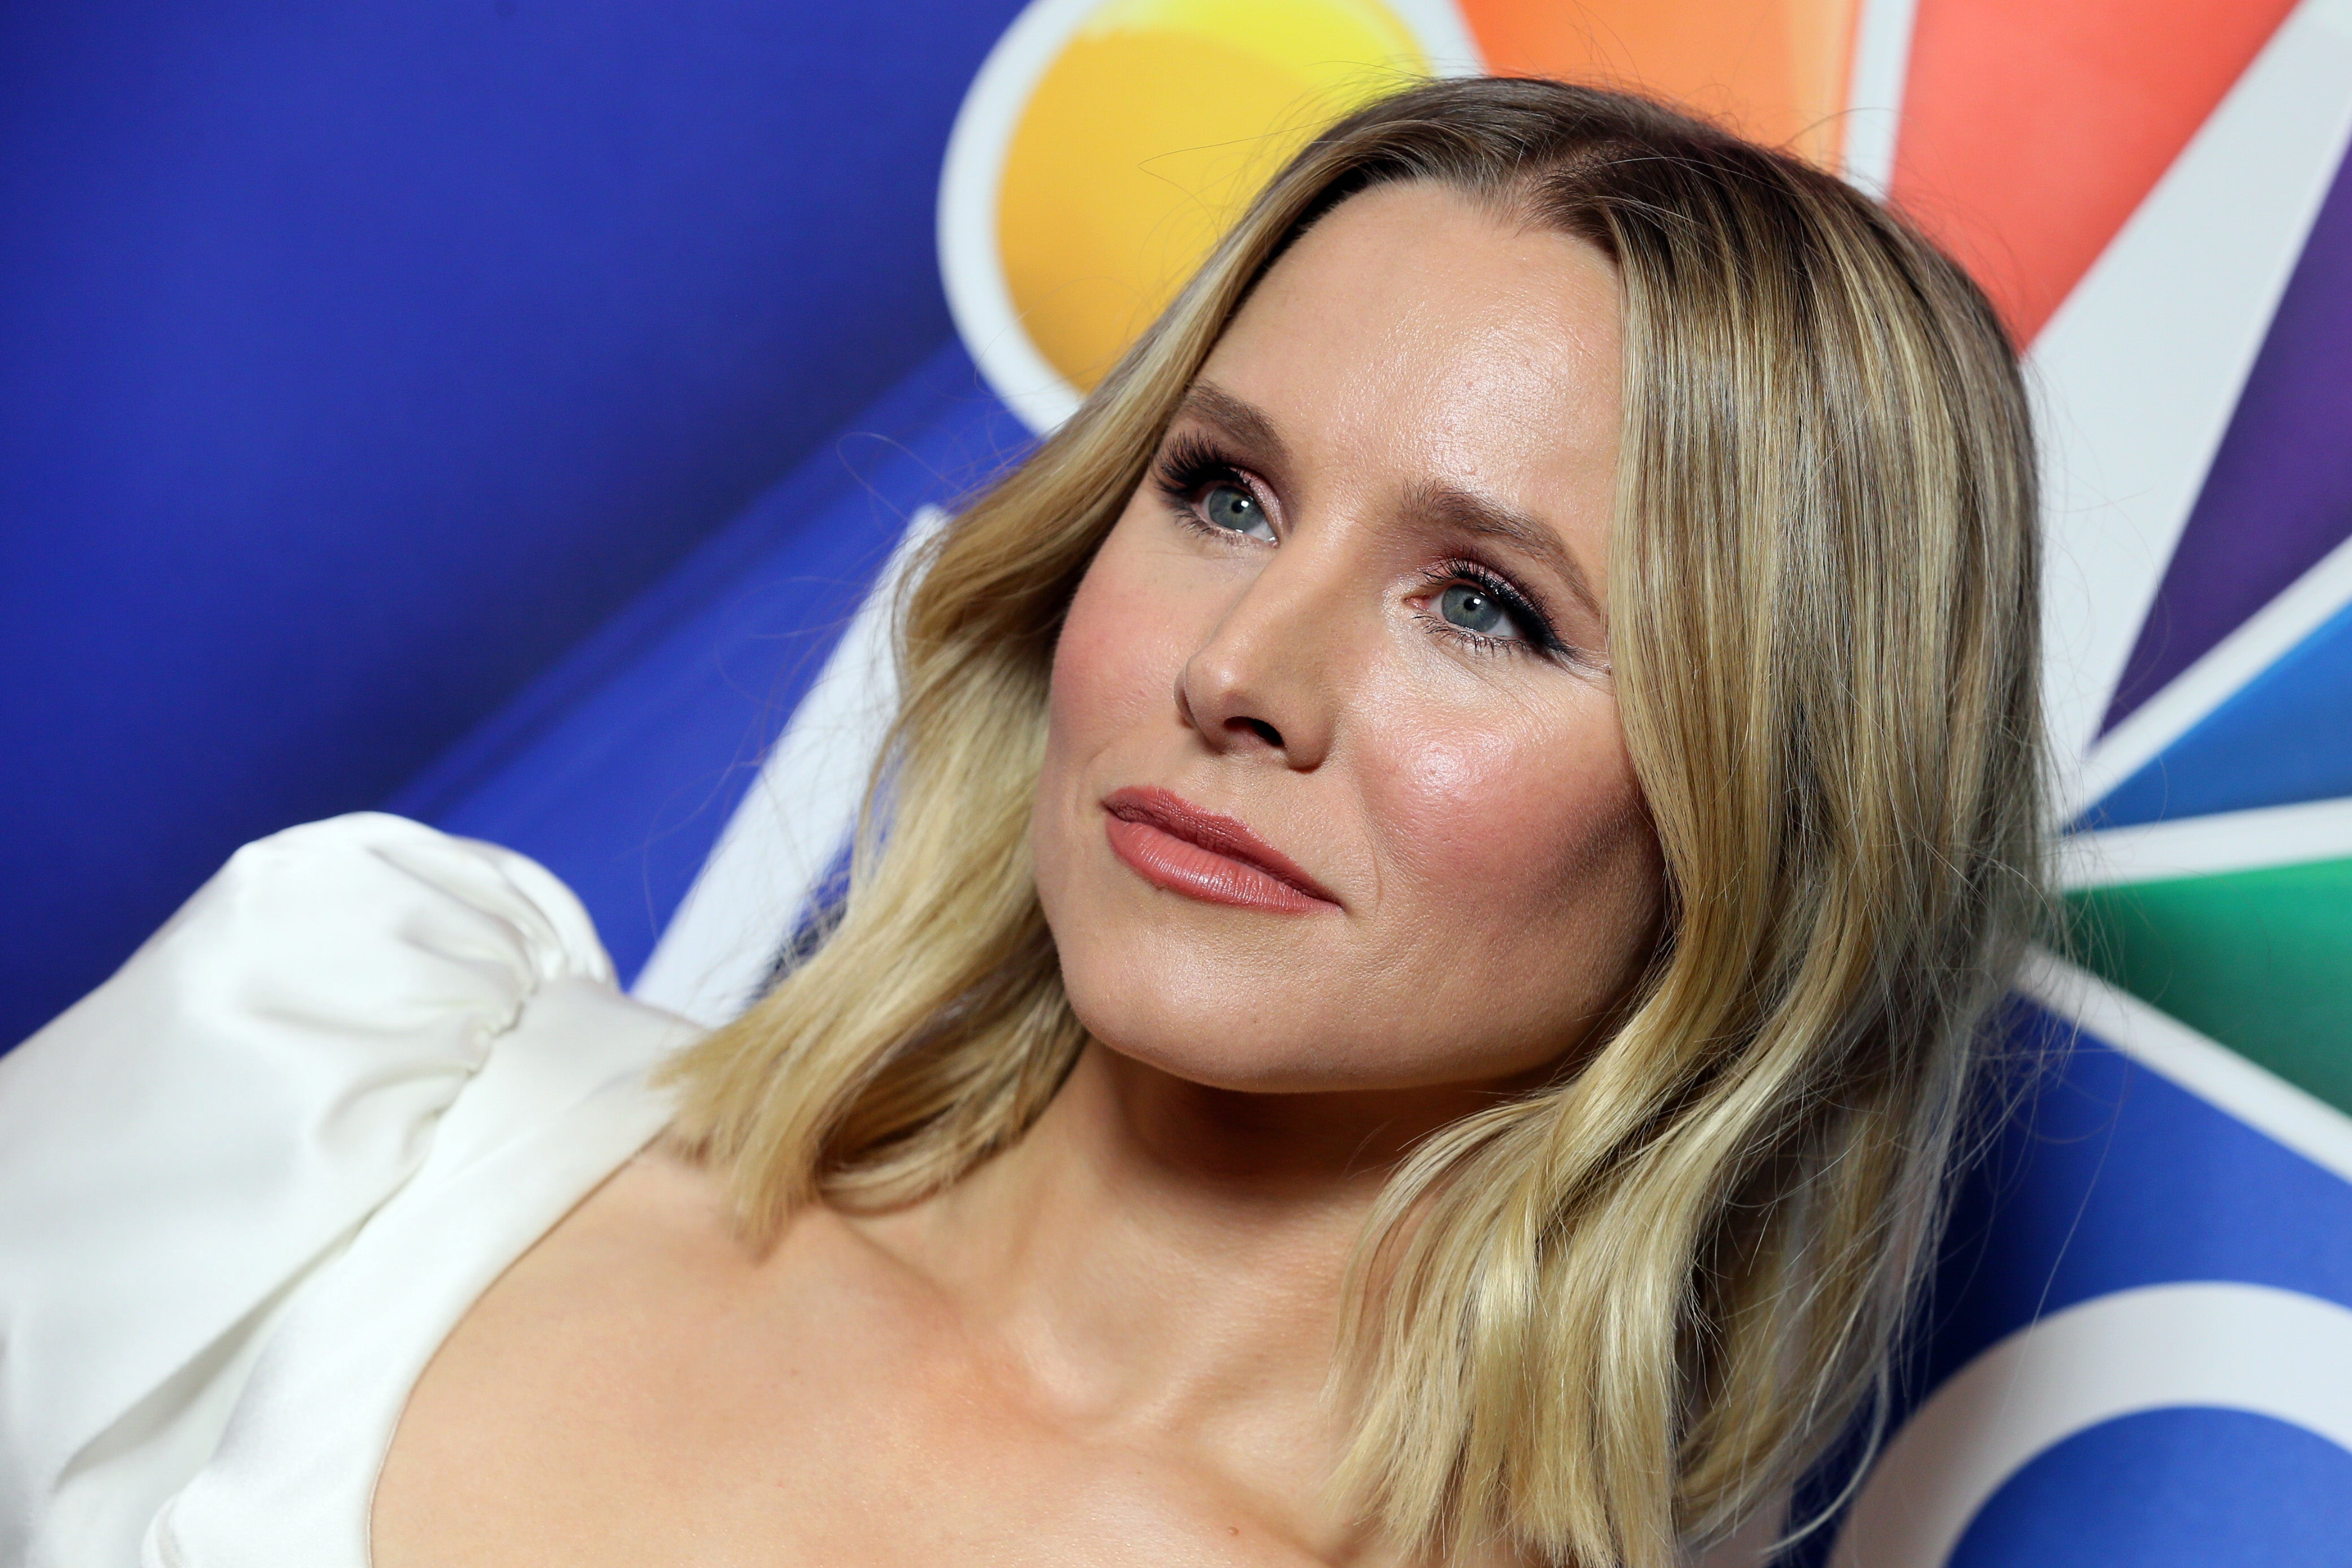 Kristen Bell Opens Up About Daughter's Scary Emergency Room Visit